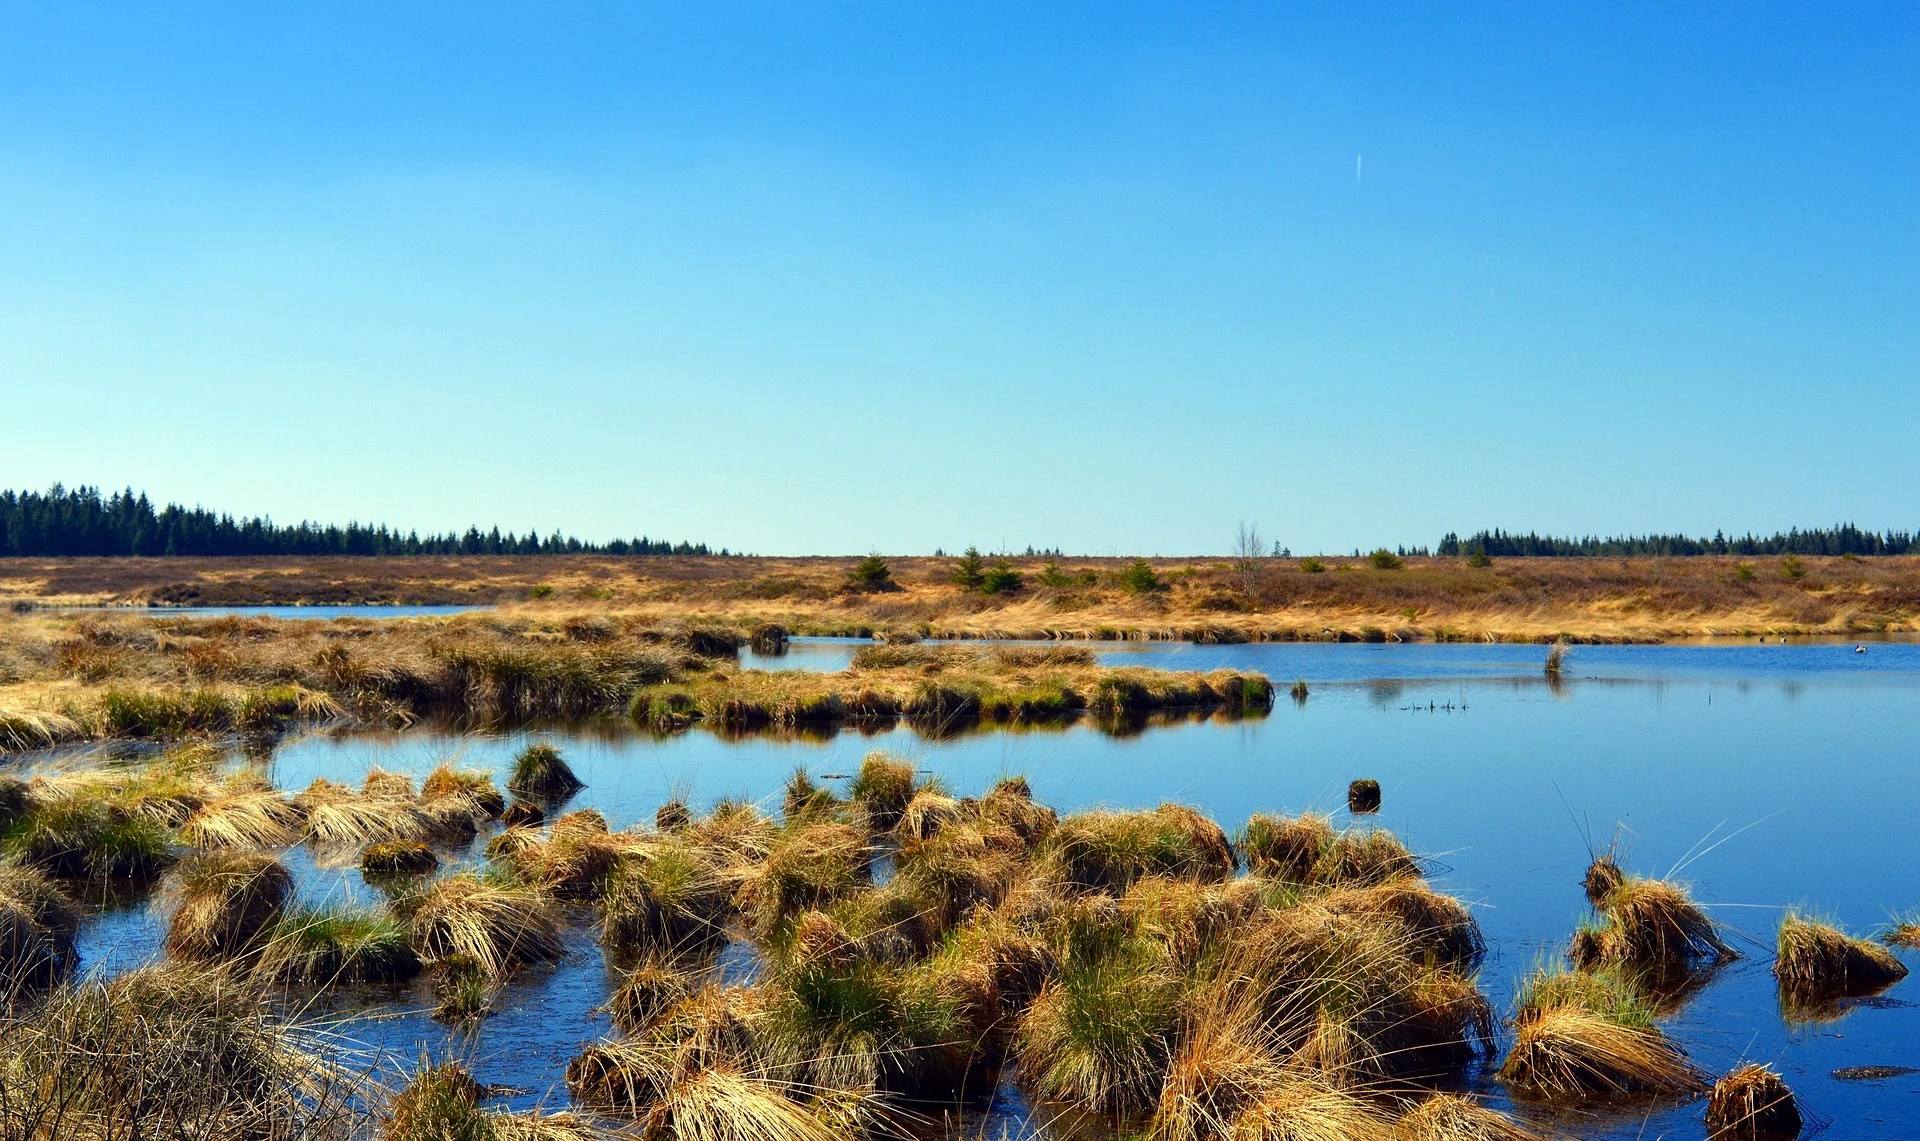 Peatlands occupy roughly 2% or 3% of the land's surface but we don't know how deep they go. Image credit - Marisa04/ Pixabay